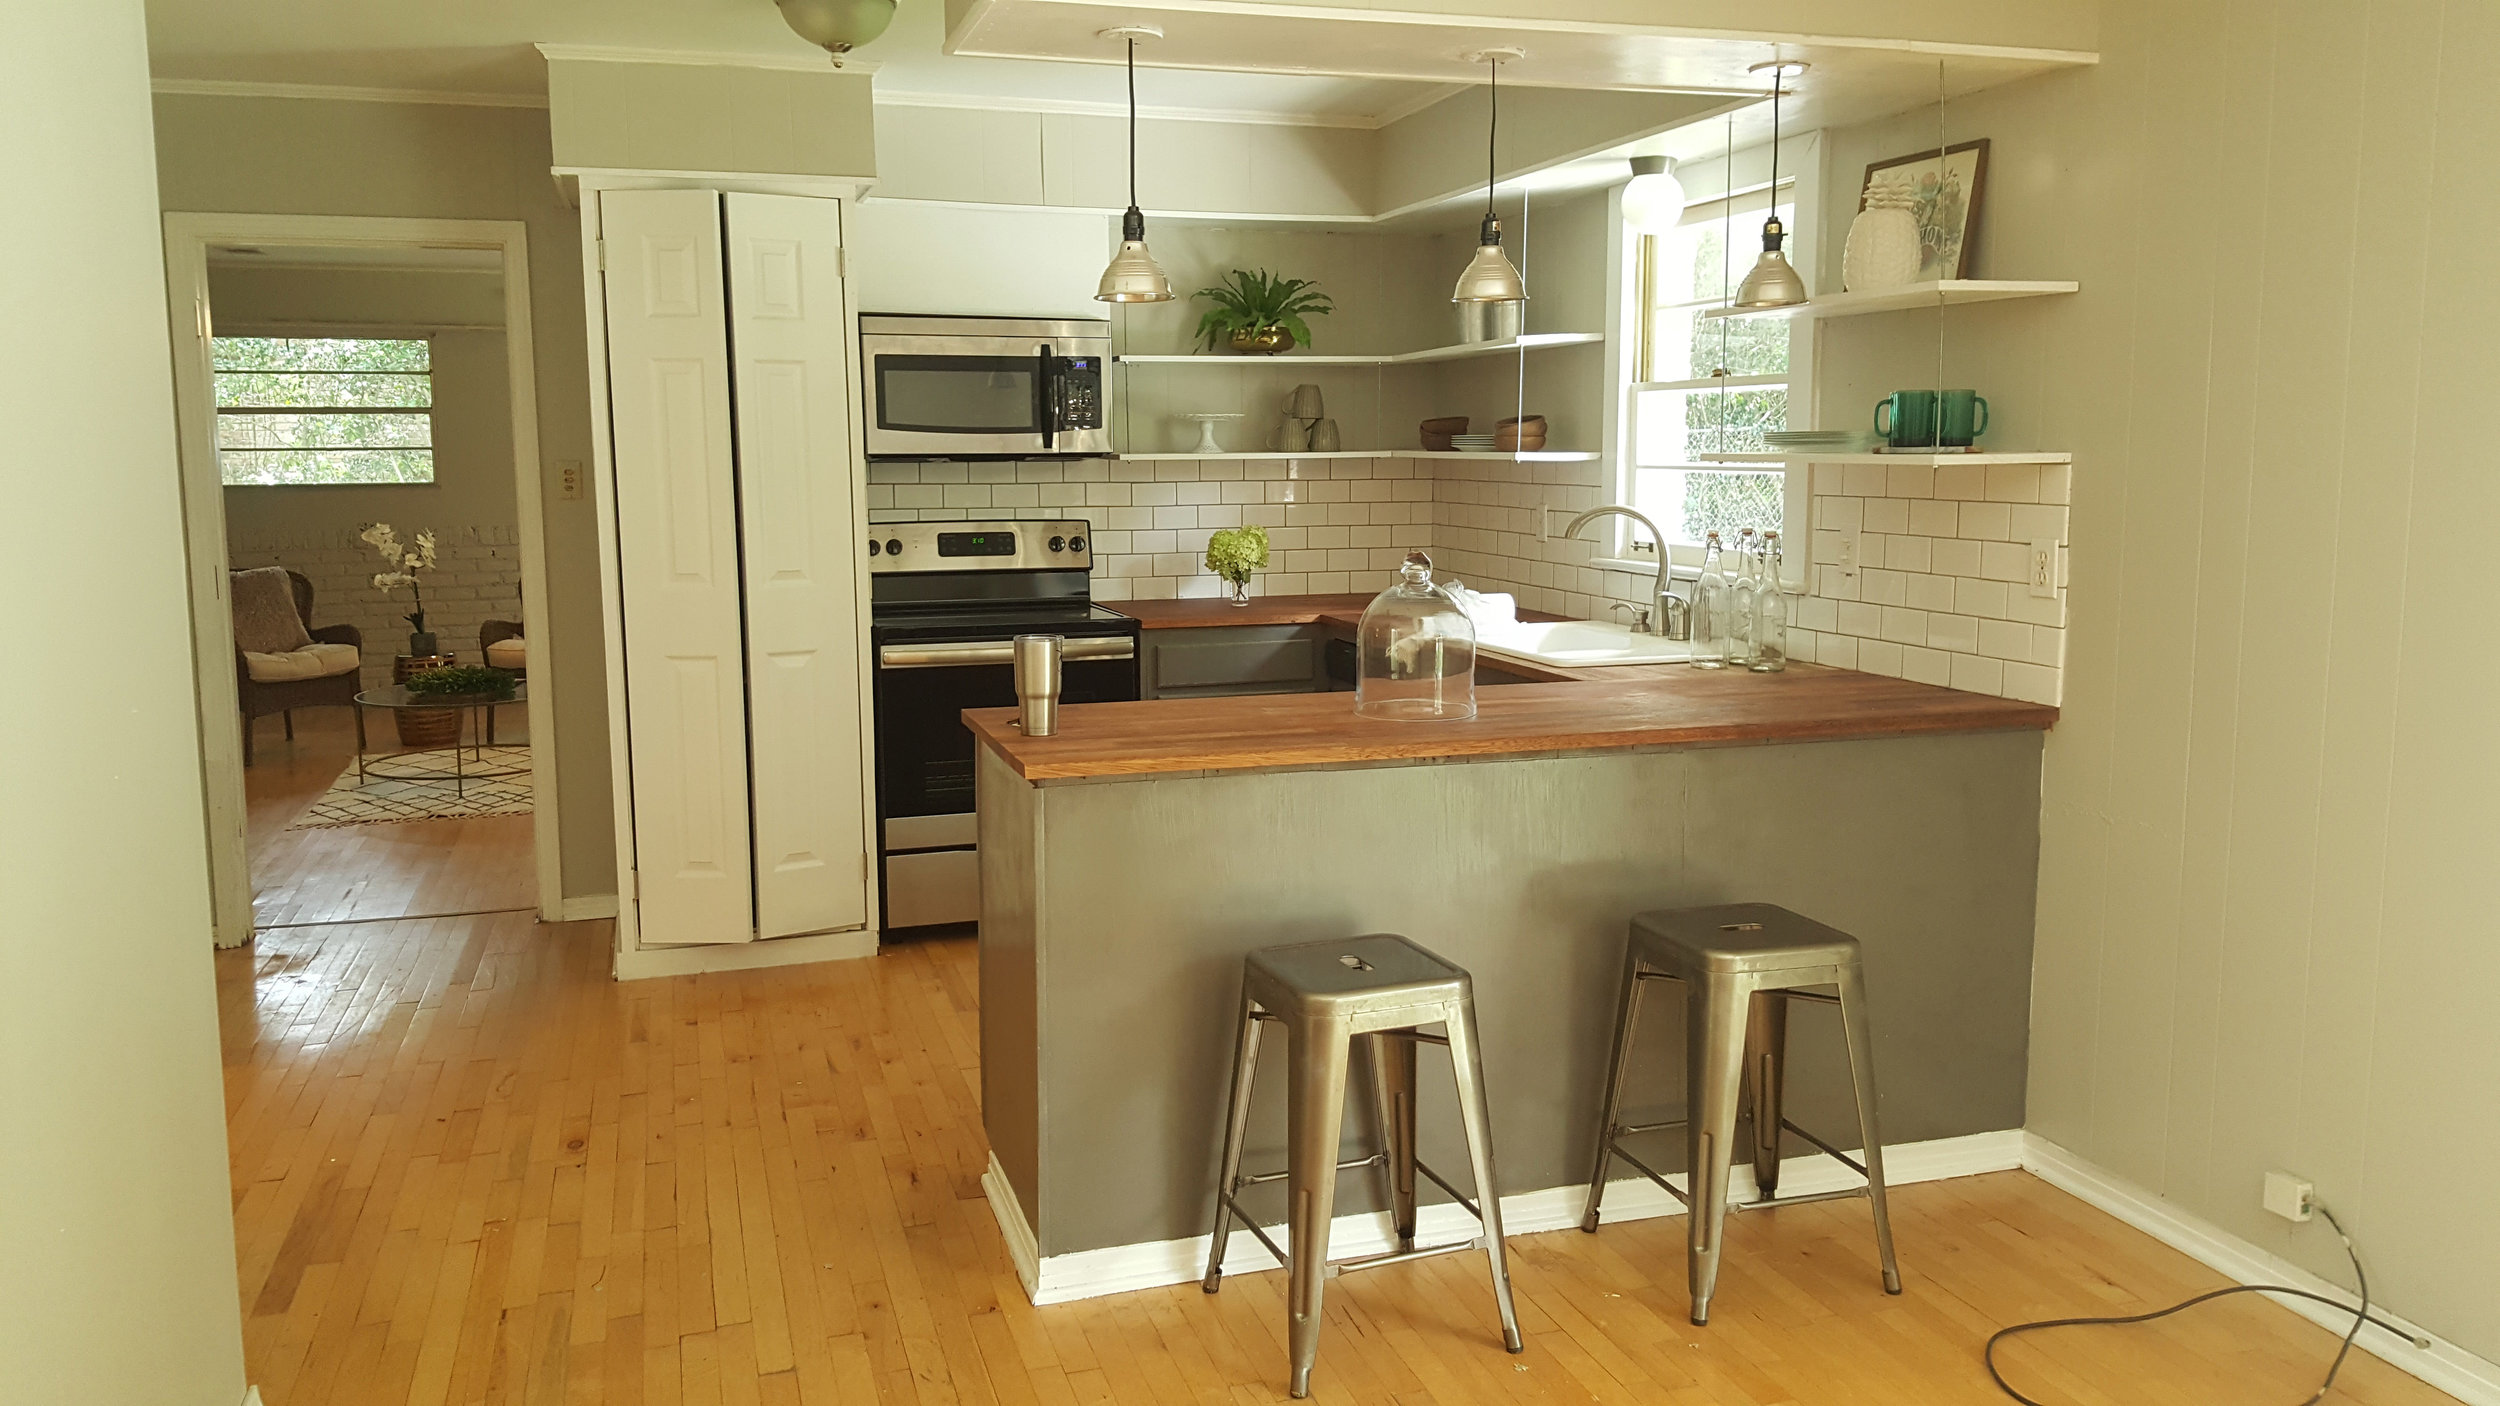 Kitchen Design On A Budget With Video Catherine Arensberg